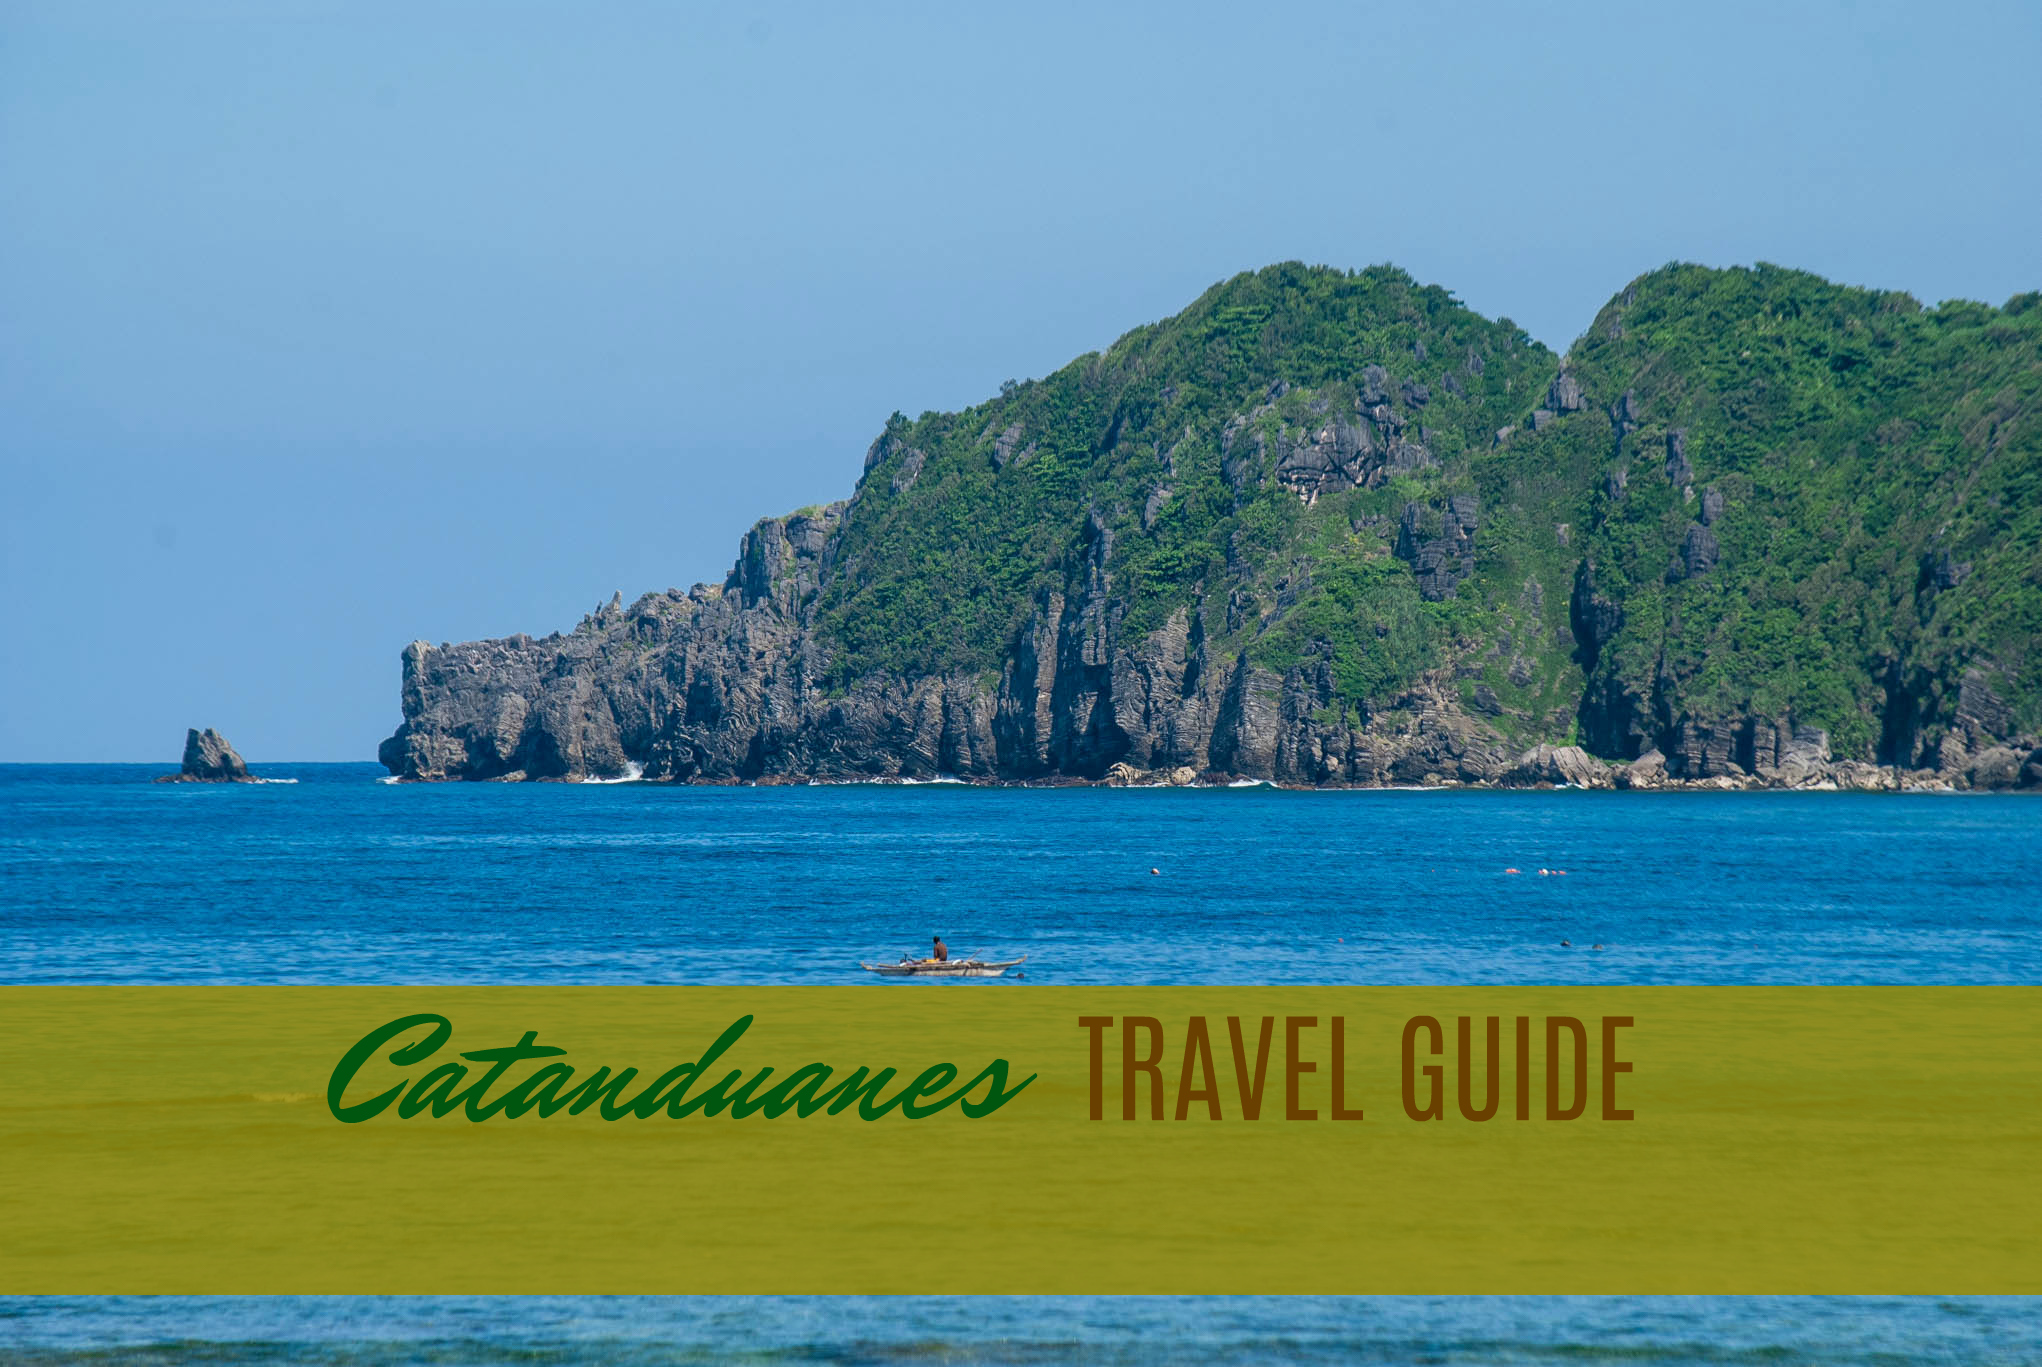 CATANDUANES TRAVEL GUIDE BLOG 2018 (Budget + Itinerary)